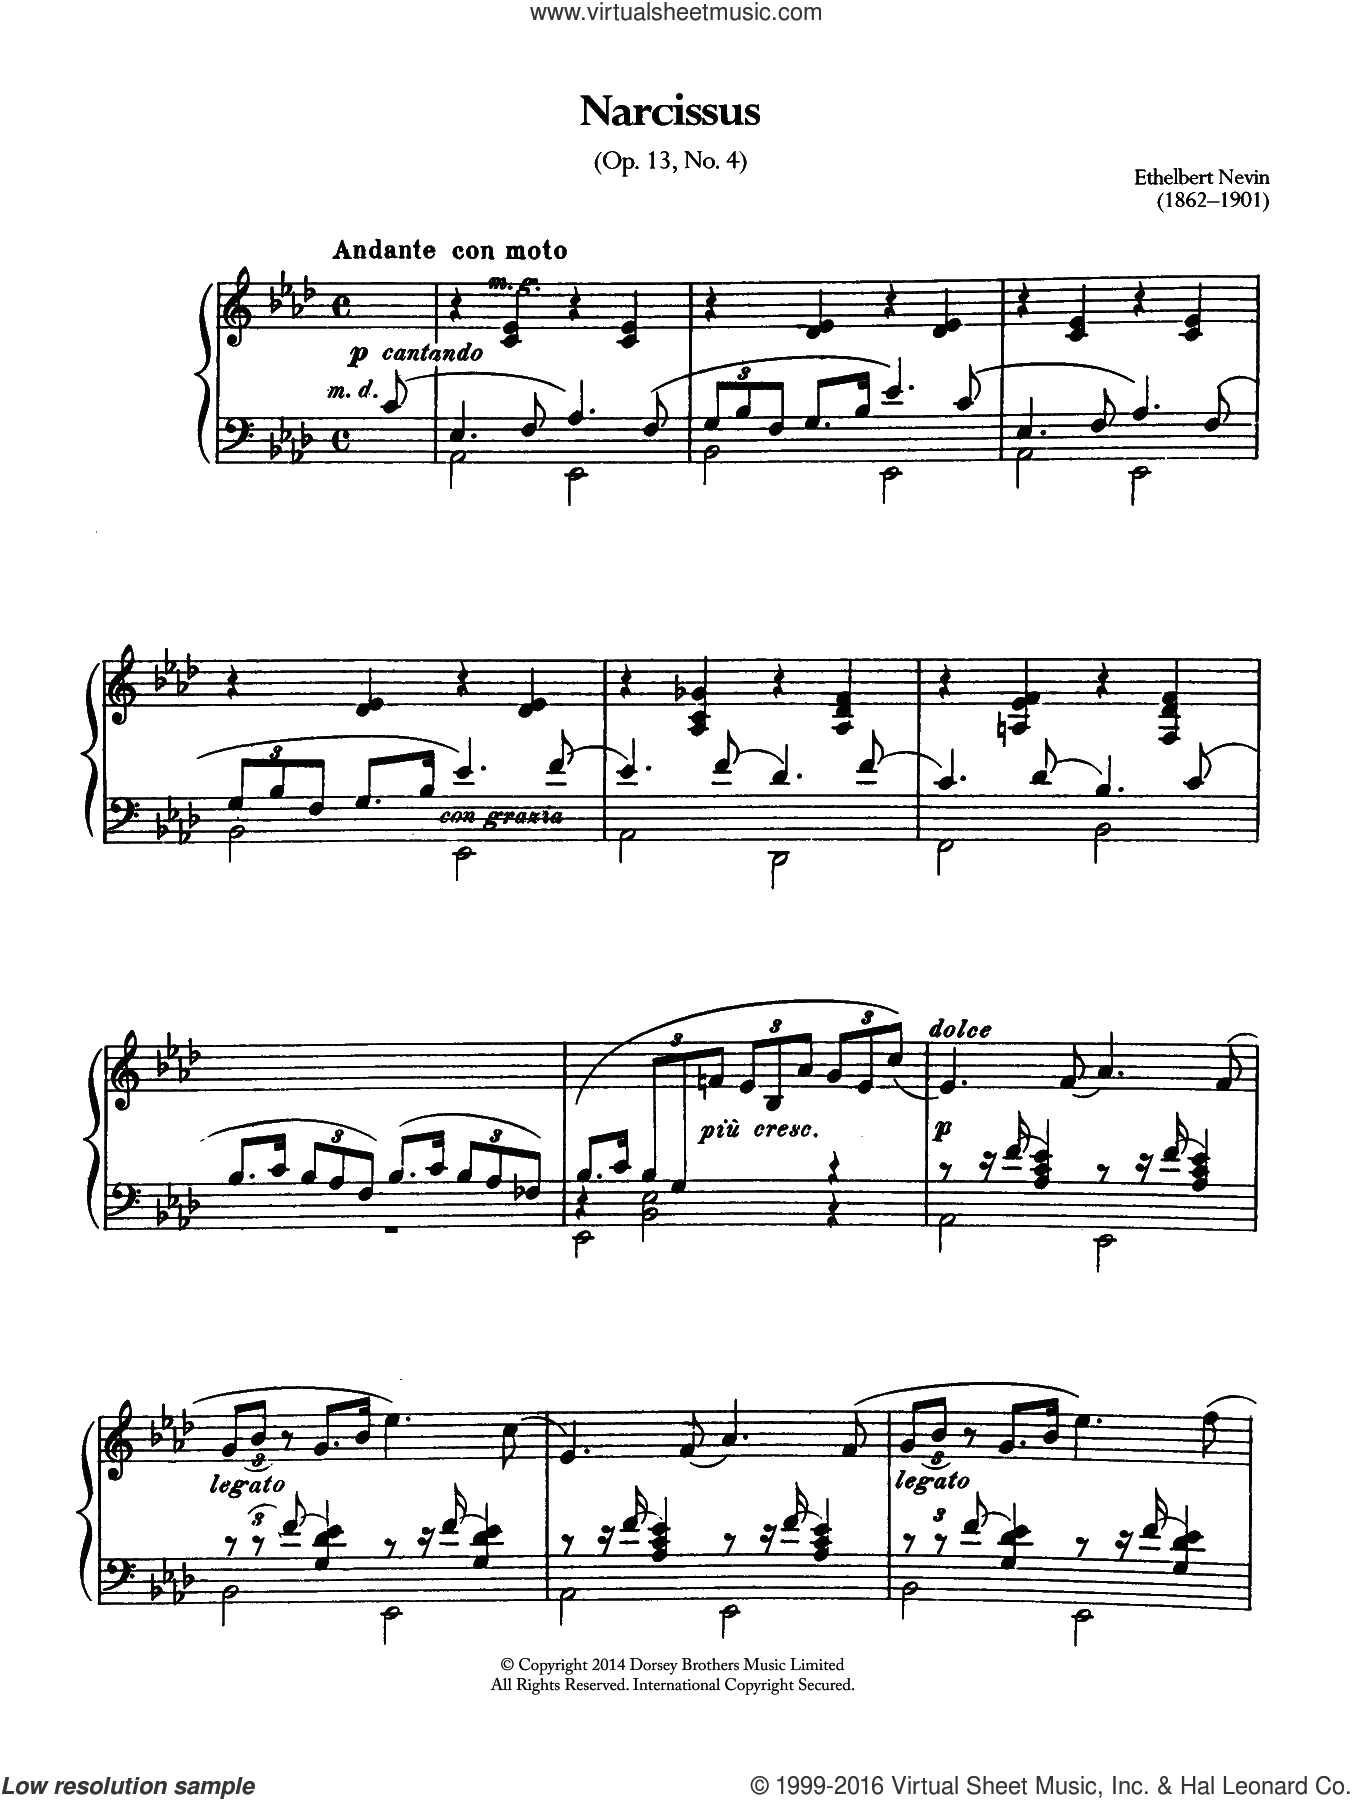 Narcissus (Opus 13 No.4) sheet music for piano solo by Ethelbert Nevin. Score Image Preview.